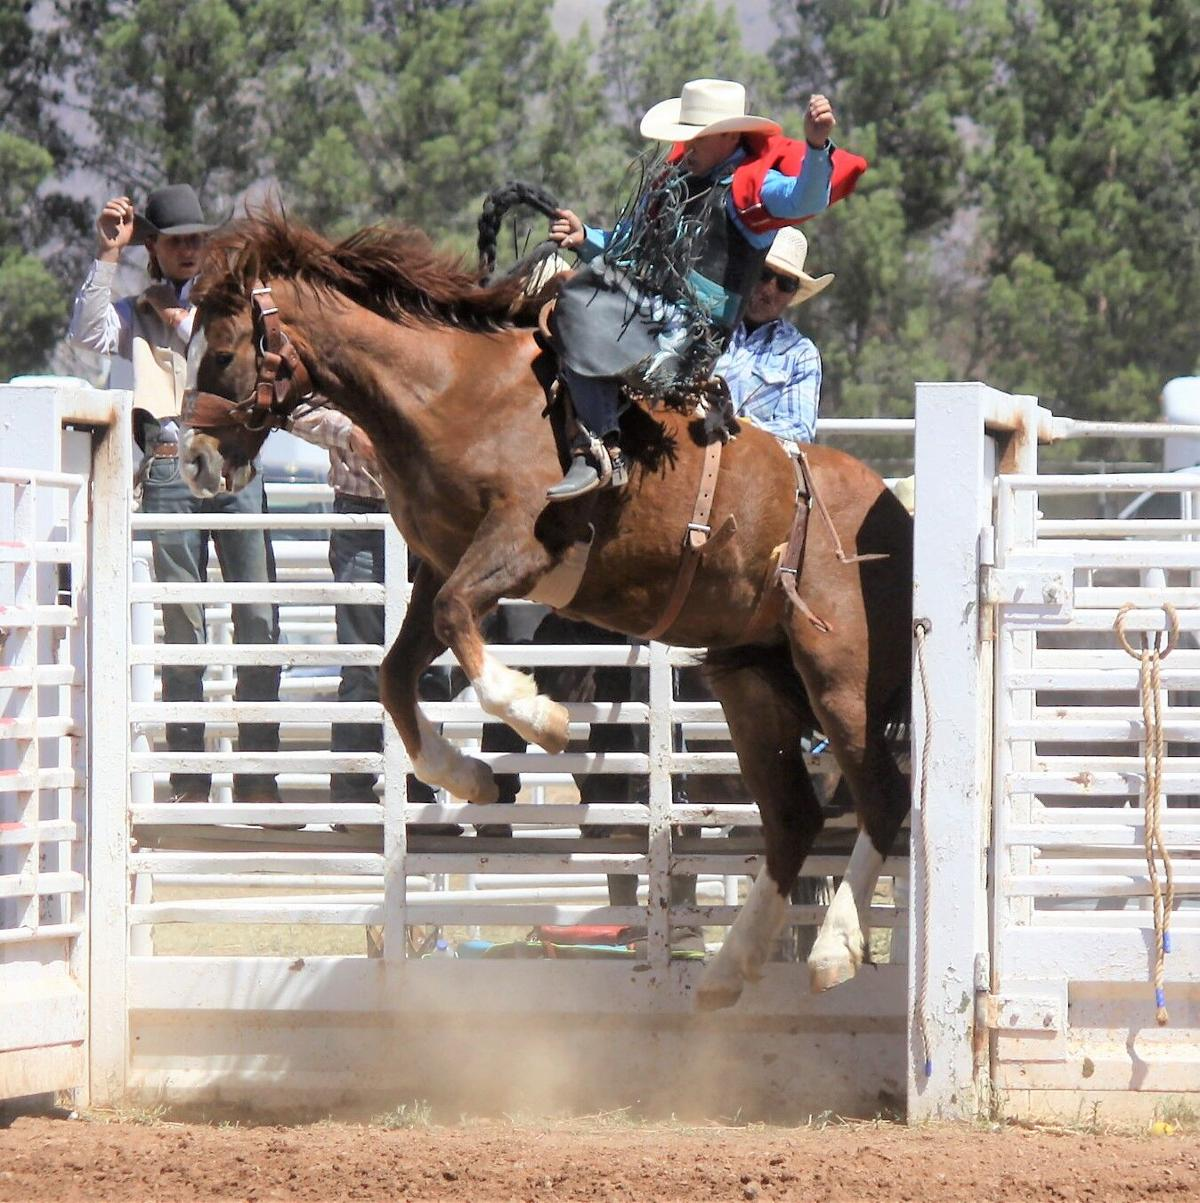 CC rodeo headed back to CNFR